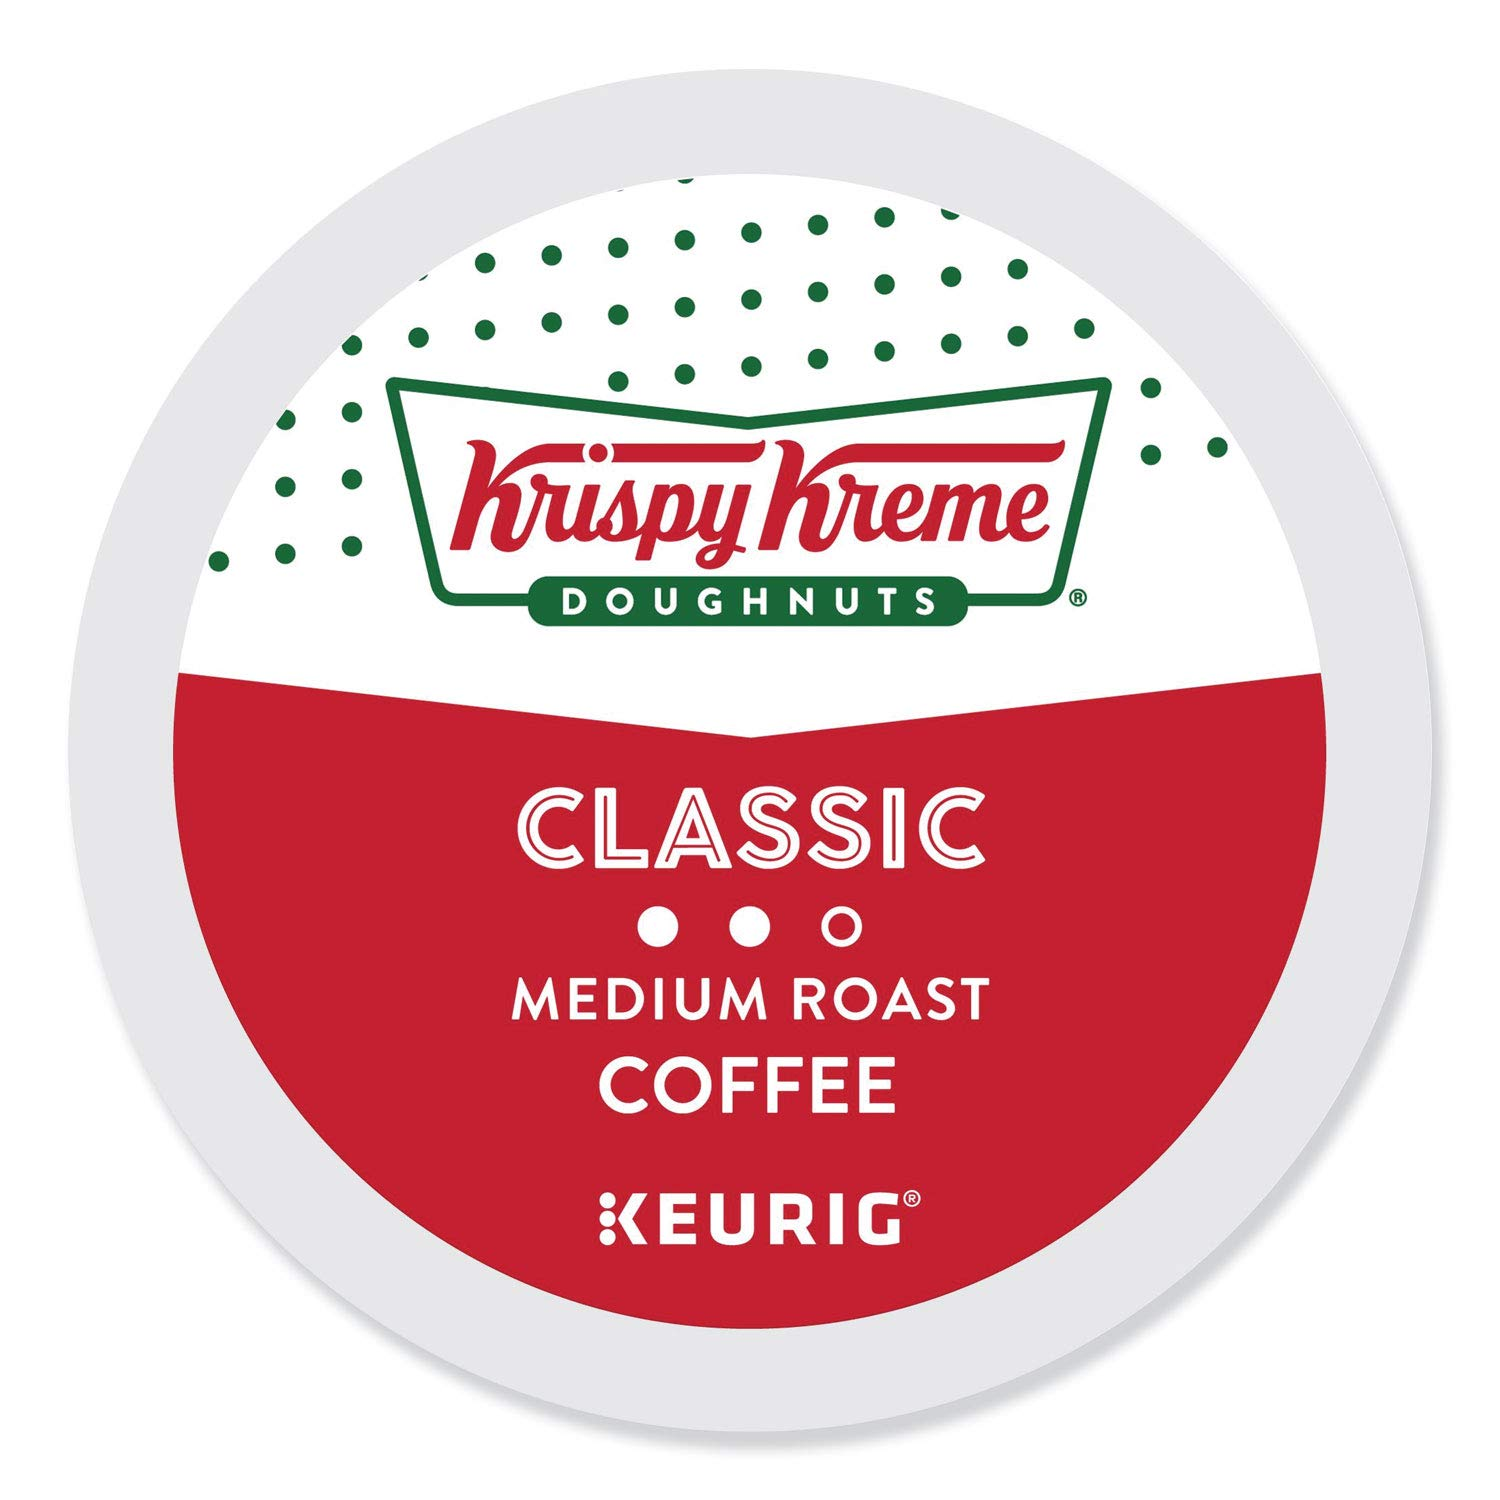 Krispy Kreme Doughnuts Smooth, Single Serve Coffee K-Cup Pod, Medium Roast, 96 by Krispy Kreme